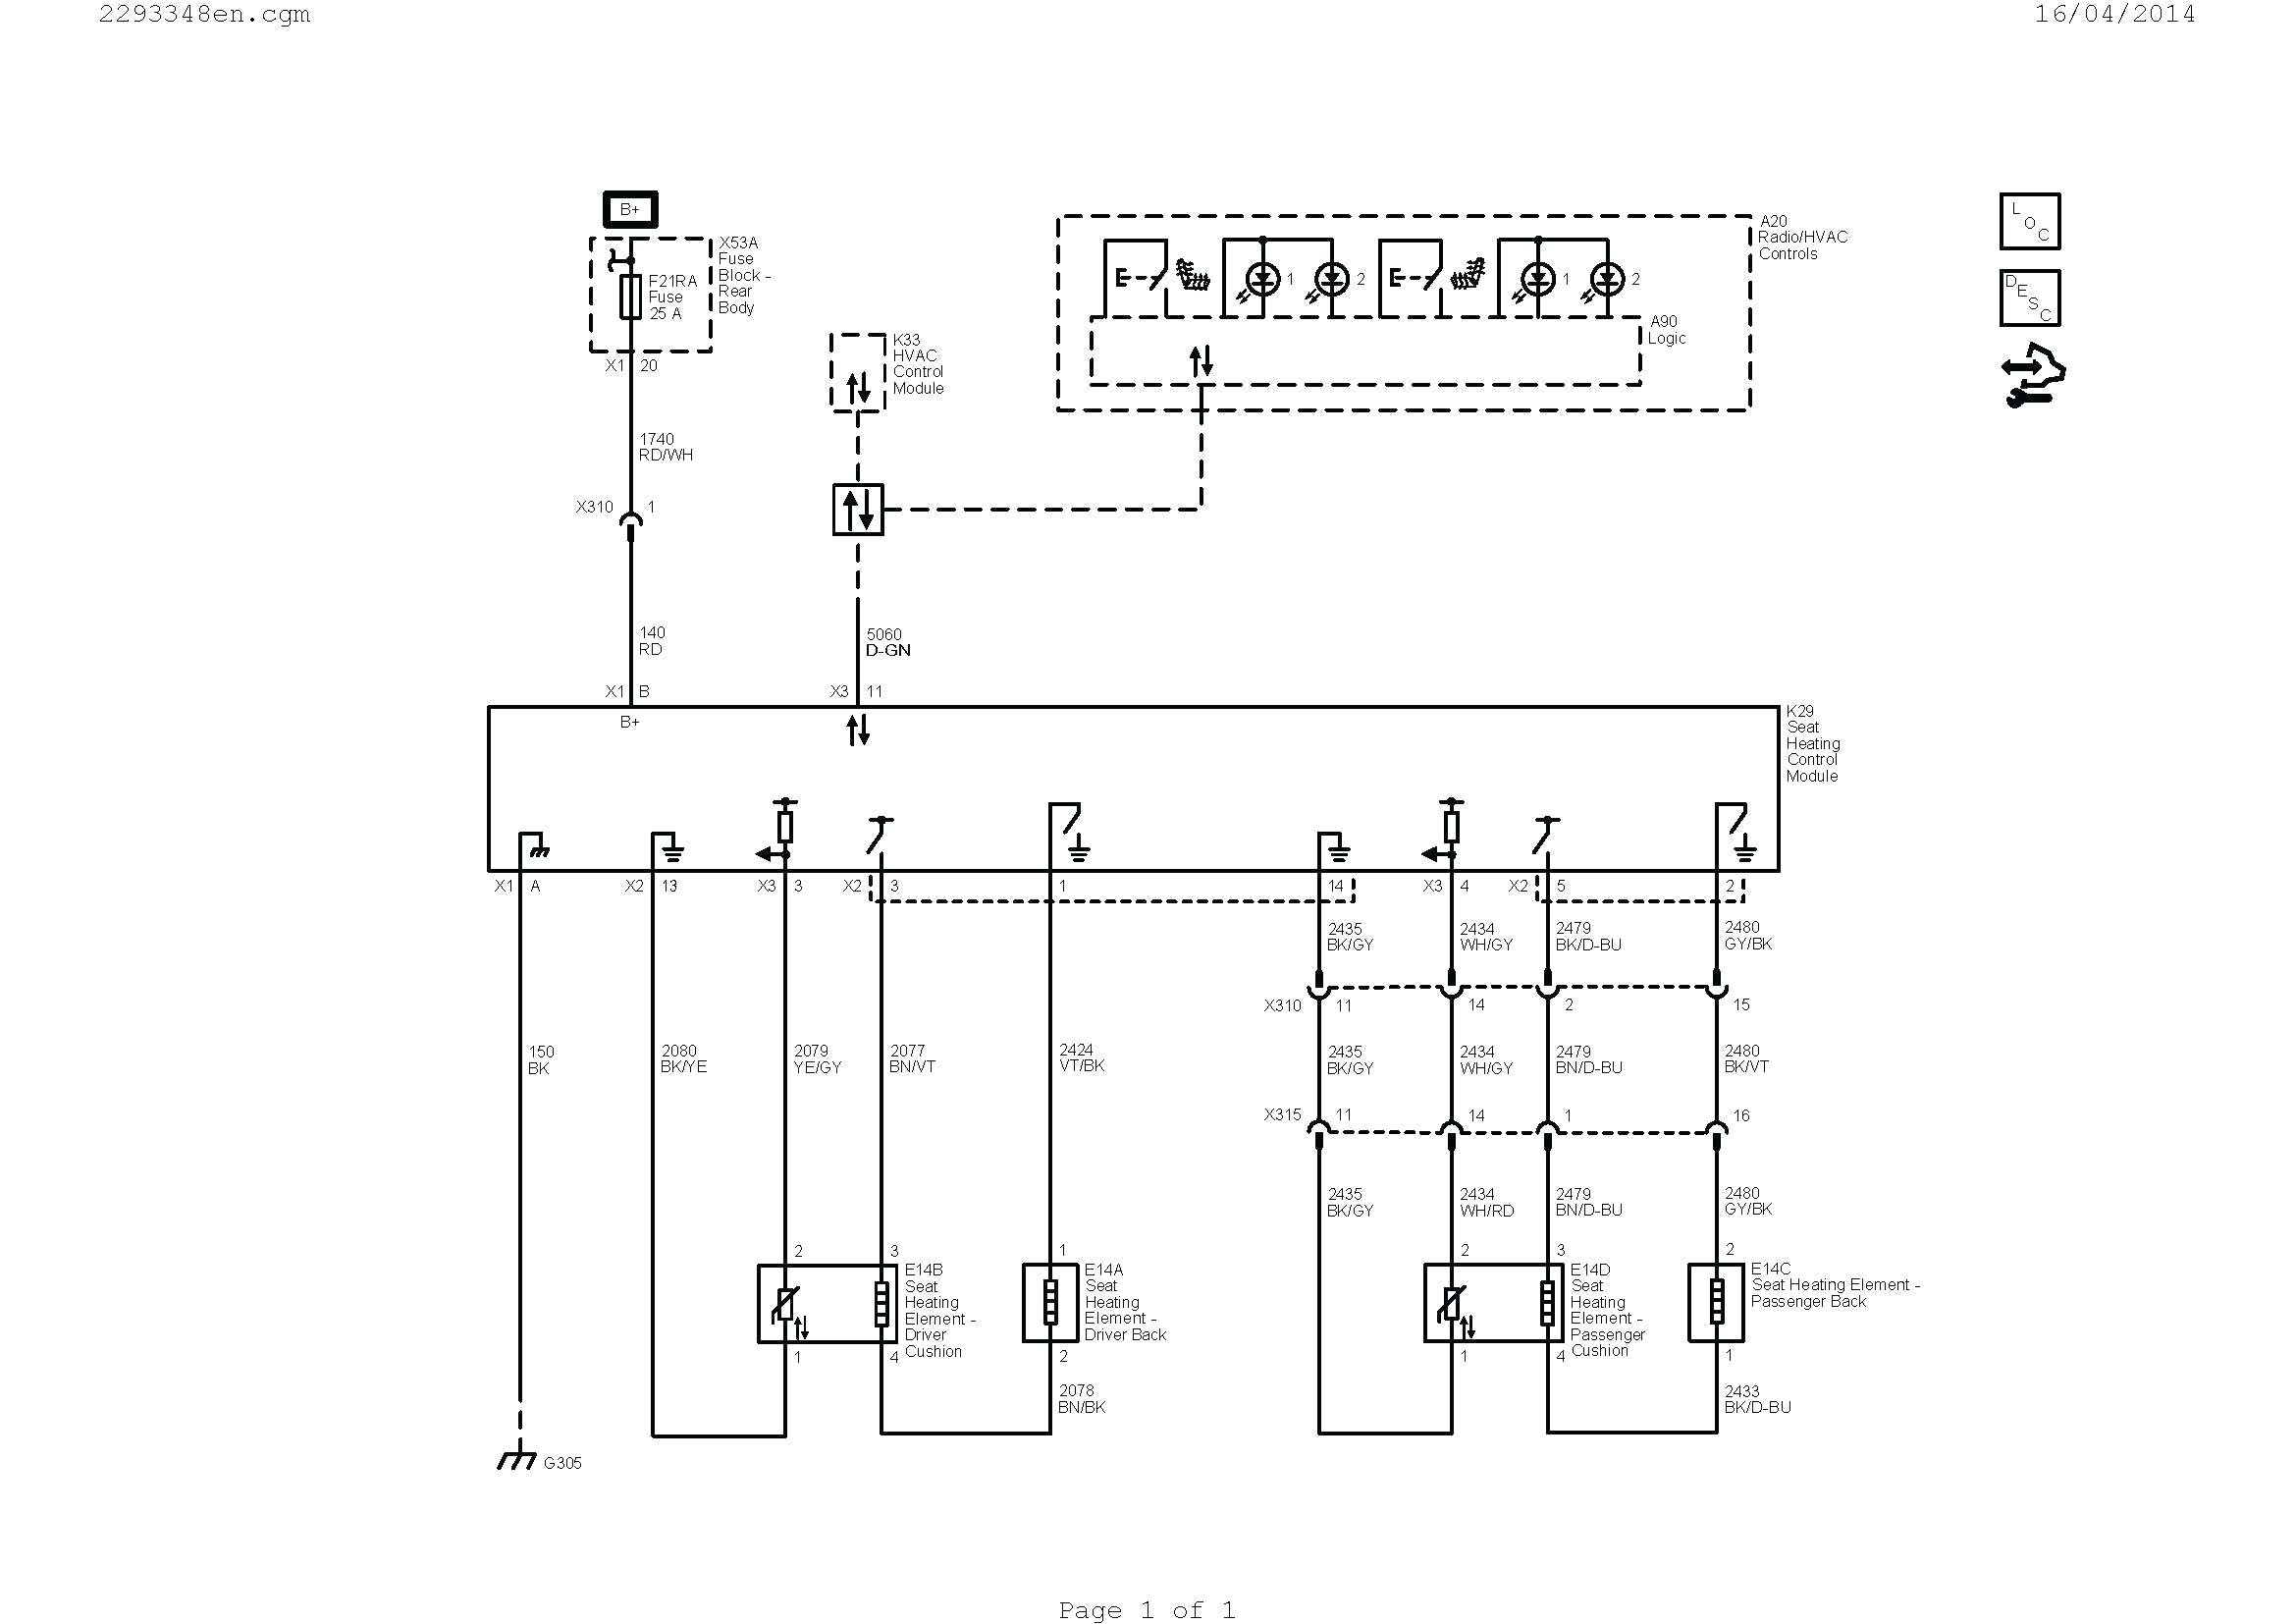 vauxhall vectra engine diagram amazing vauxhall astra wiring diagram gallery everything you need of vauxhall vectra engine diagram jpg